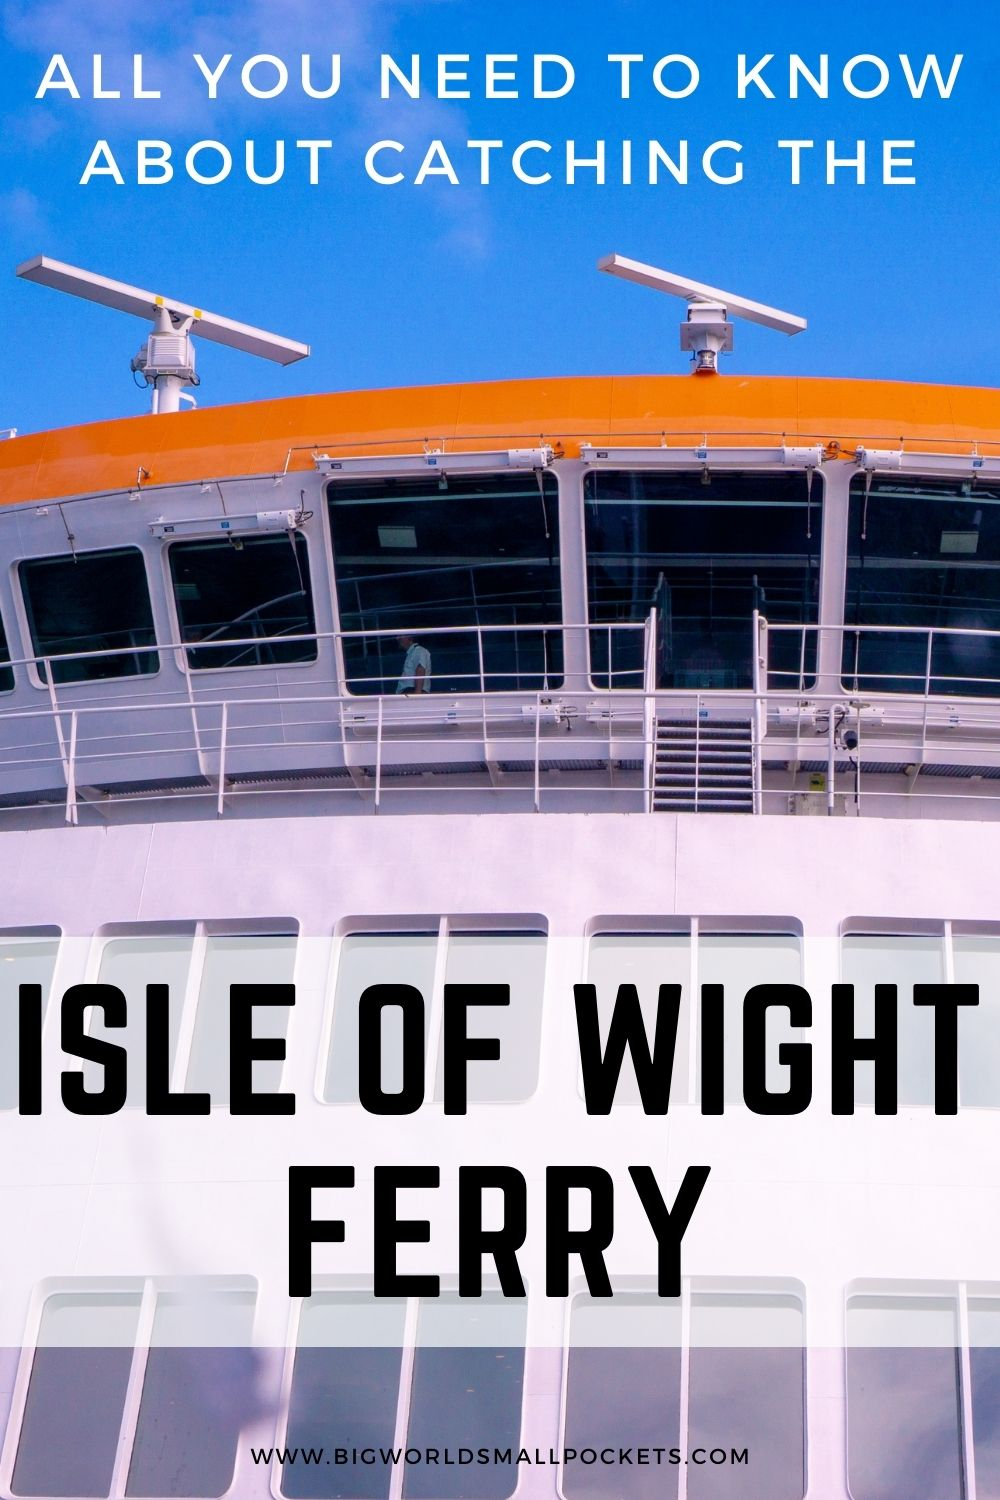 All You Need to Know About Catching the Isle of Wight Ferry